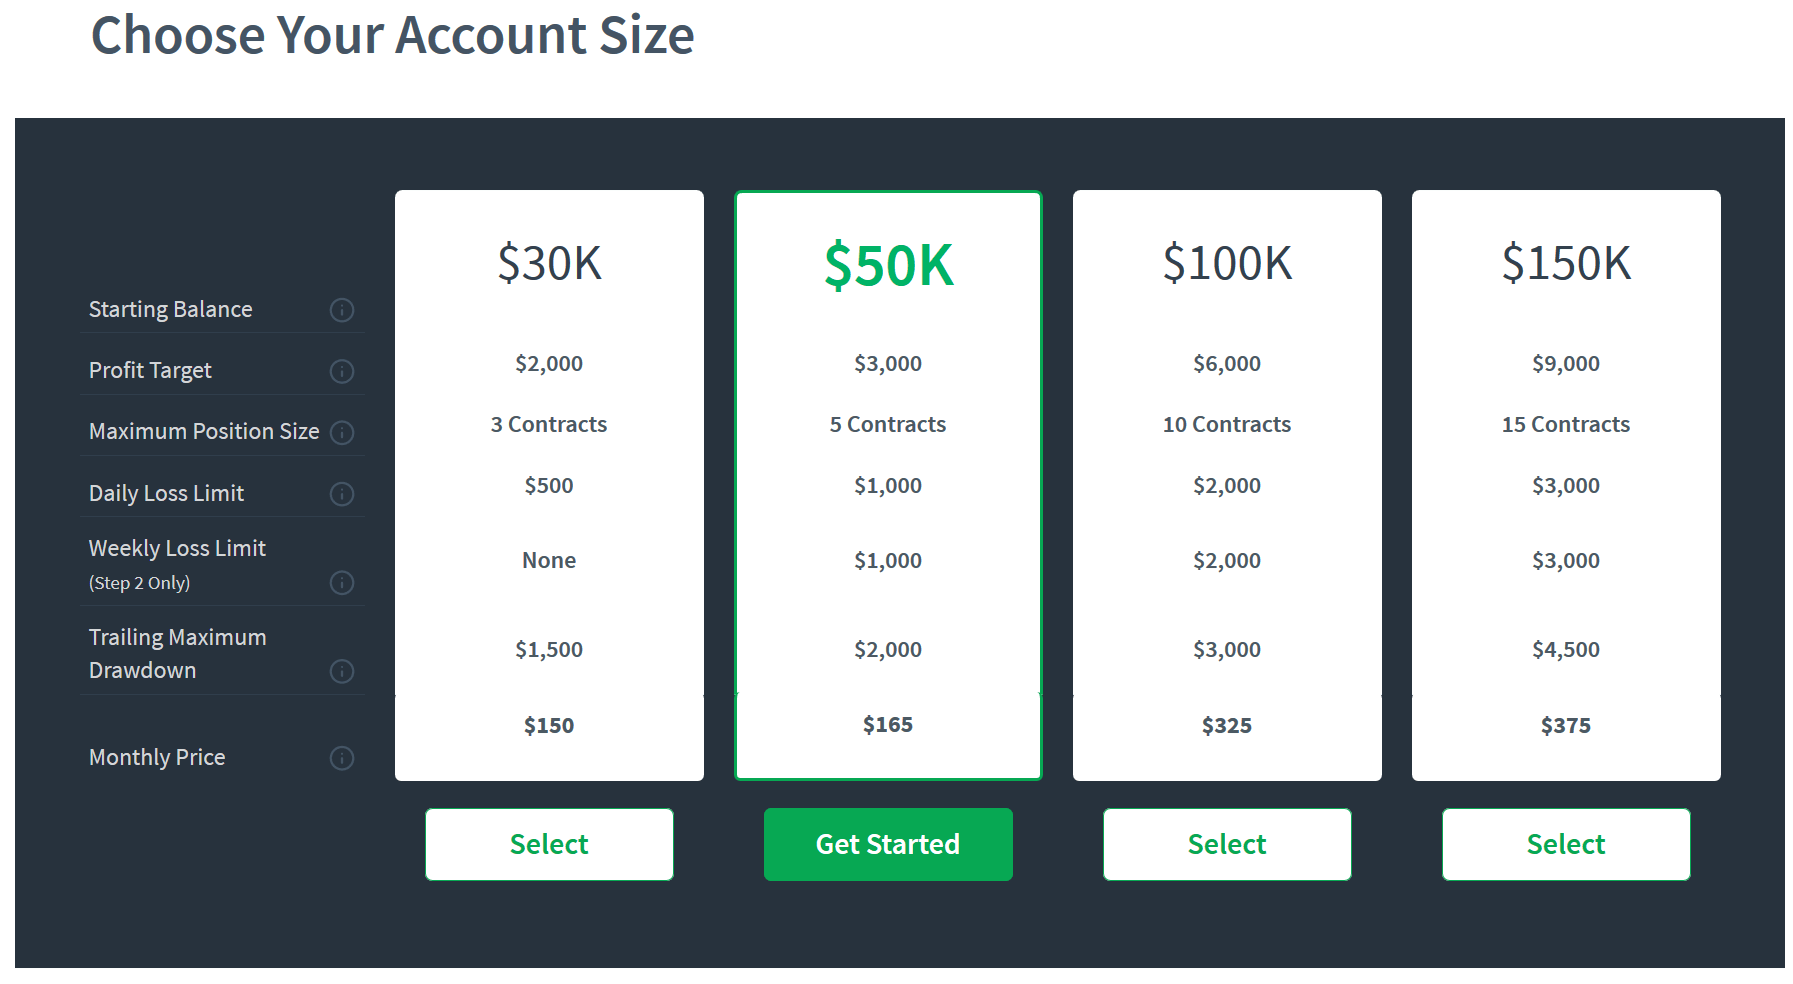 TopstepTrader Account Size